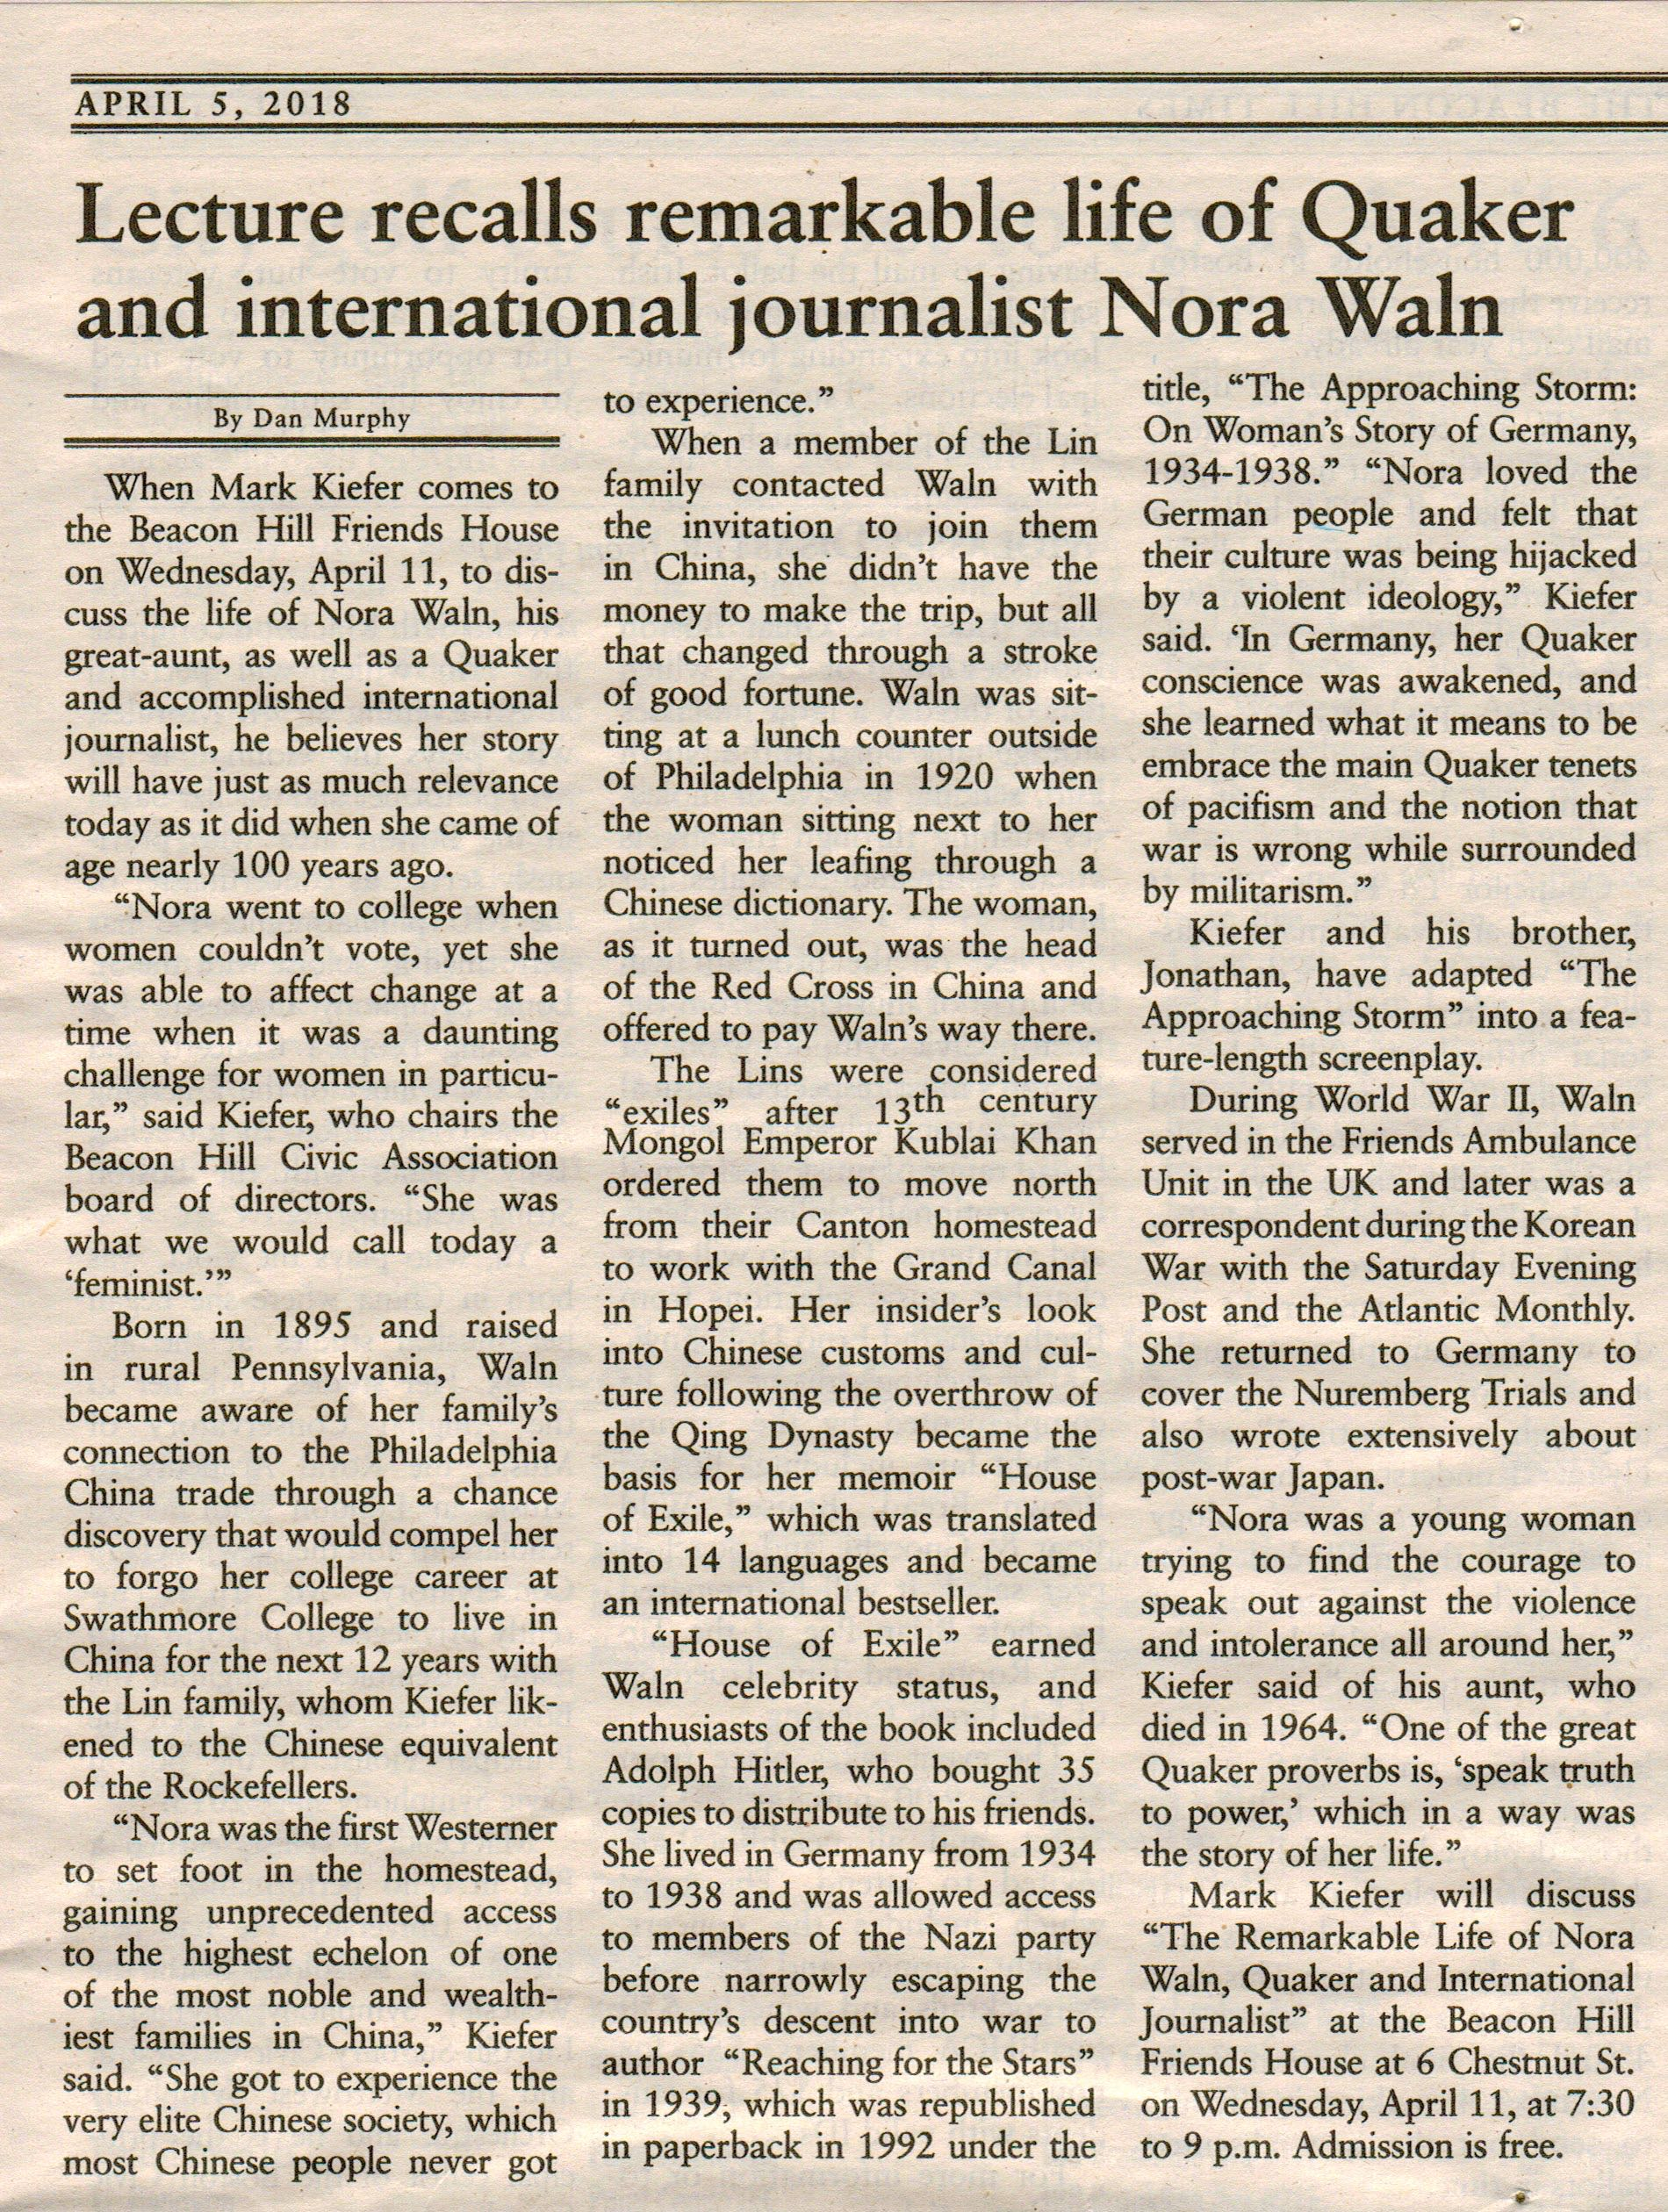 Article in Beacon Hill Times on Upcoming Nora Waln Event